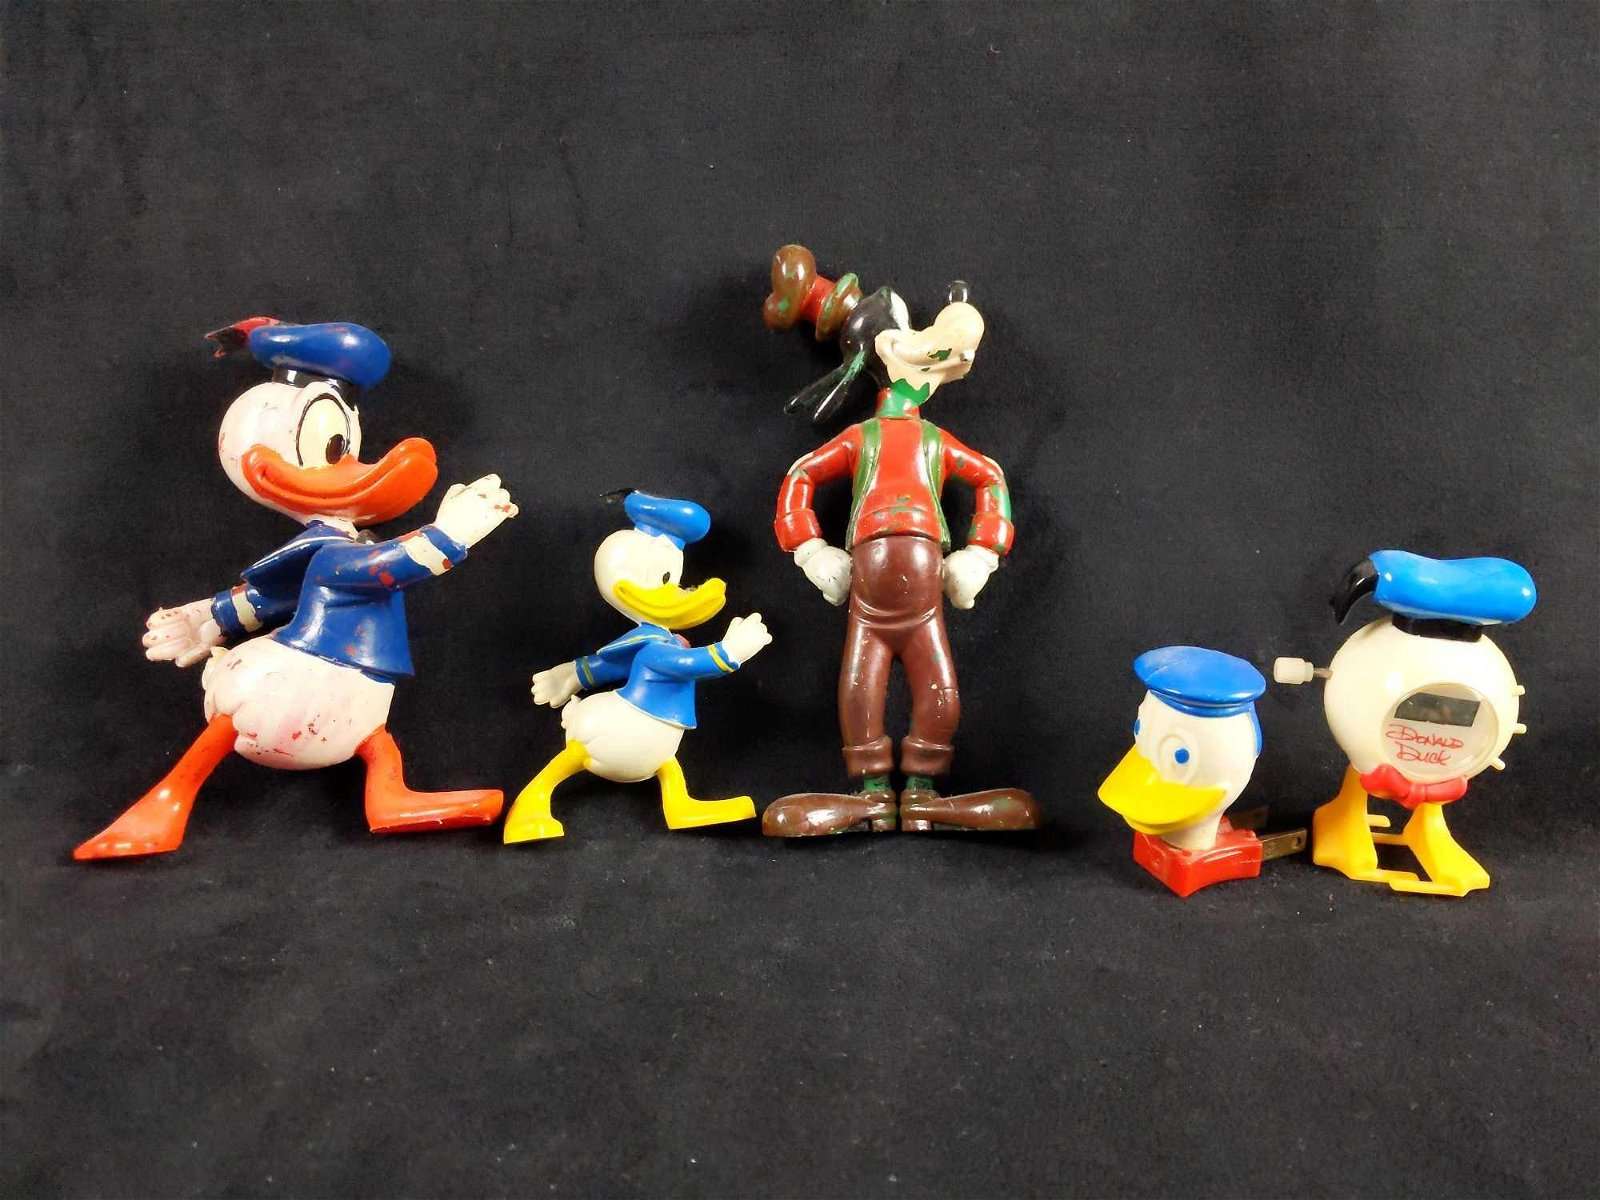 Assorted Vintage Disney Donald Duck Toys Lot of 5